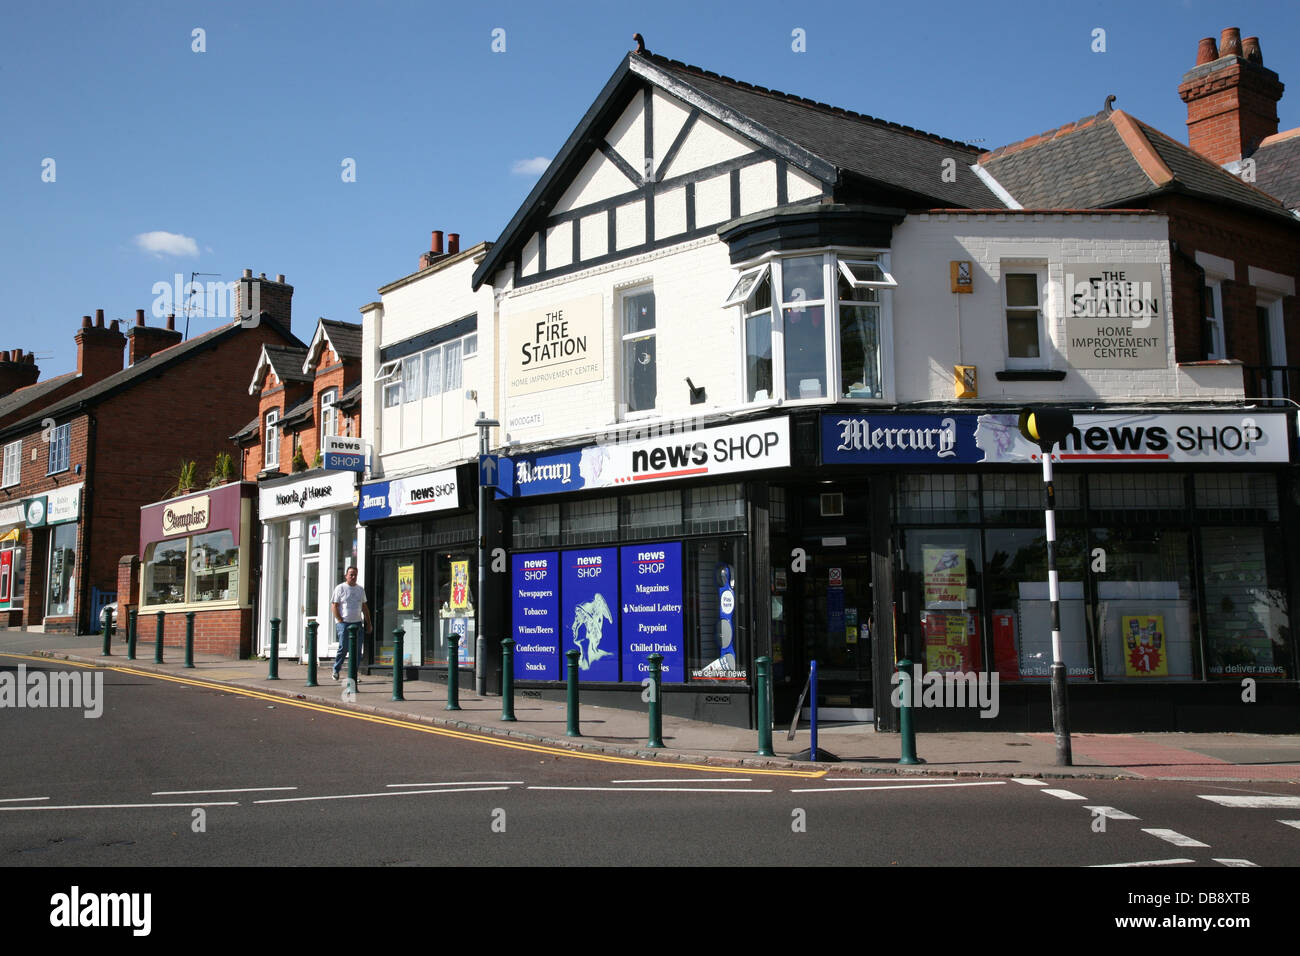 95826bac68d the mercury news shop a newsagent in rothley leicestershire - Stock Image